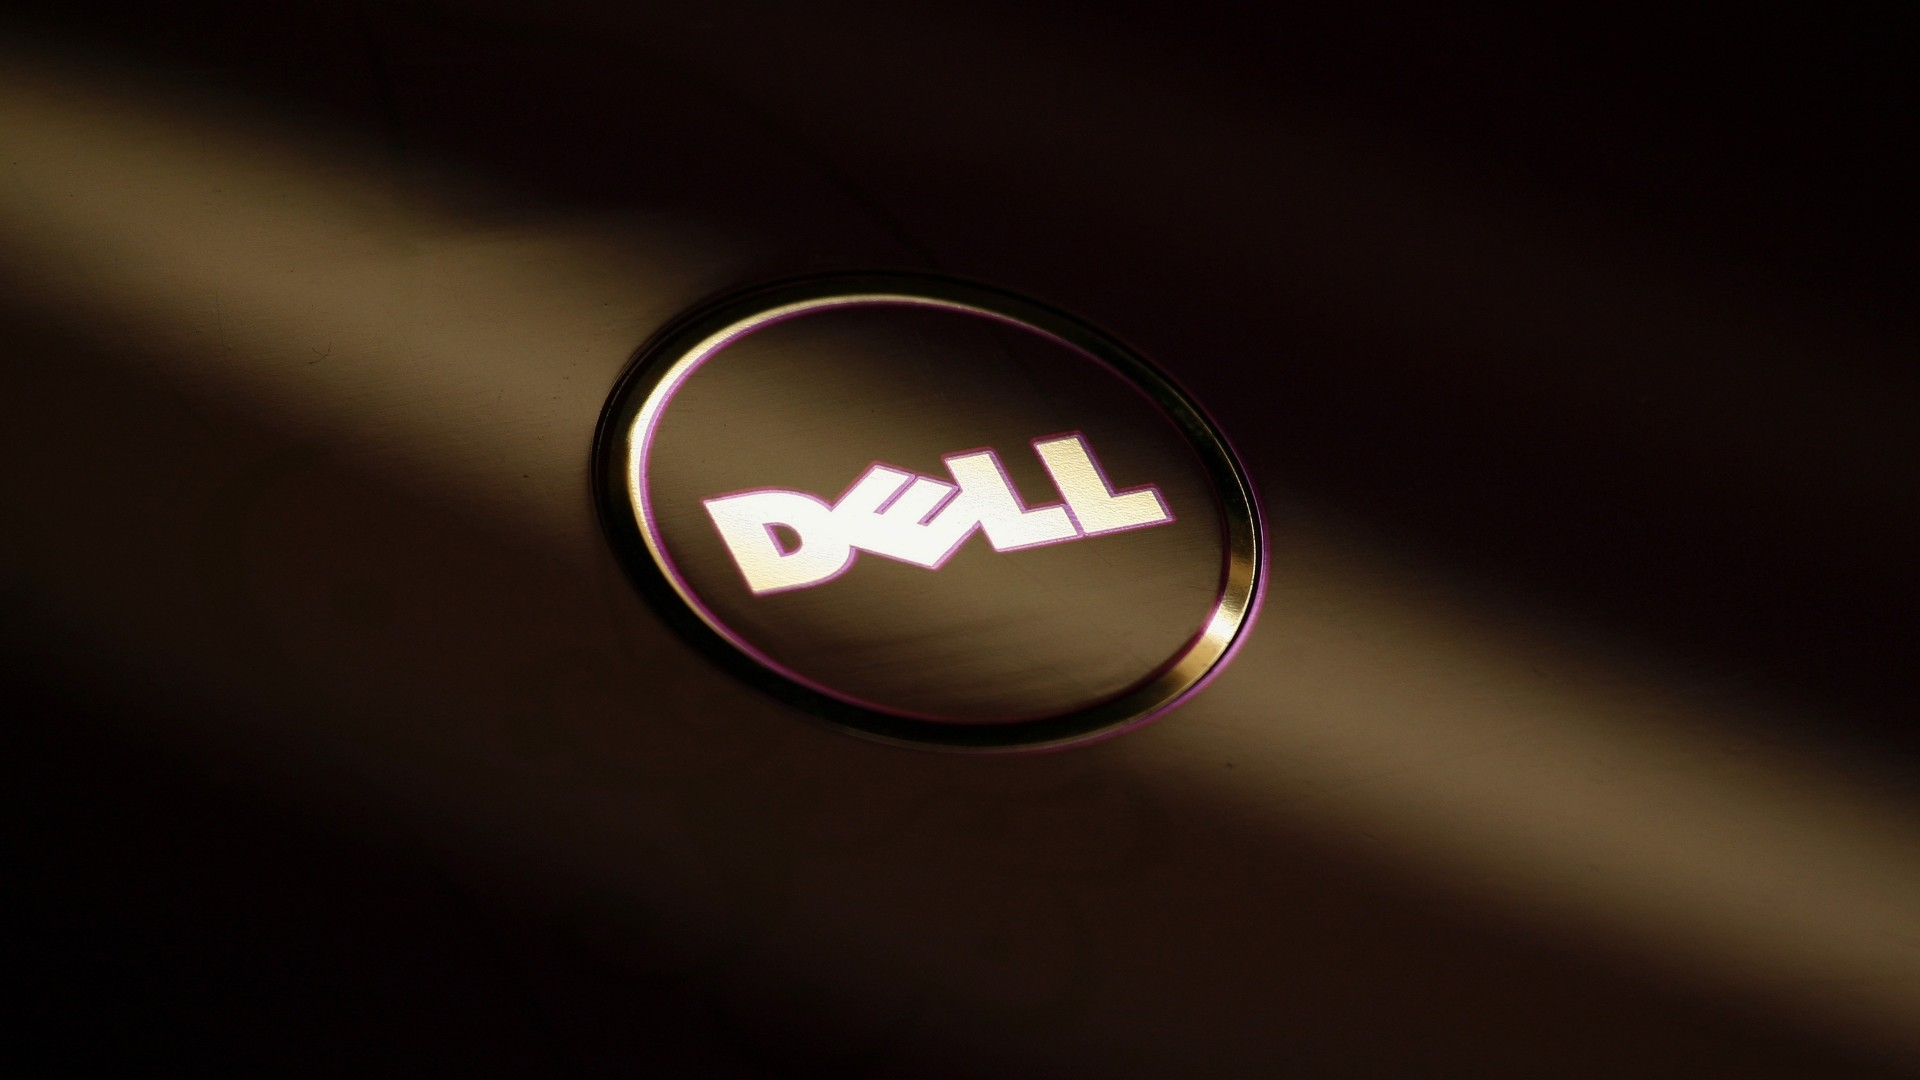 Dell Wallpaper 69 Images